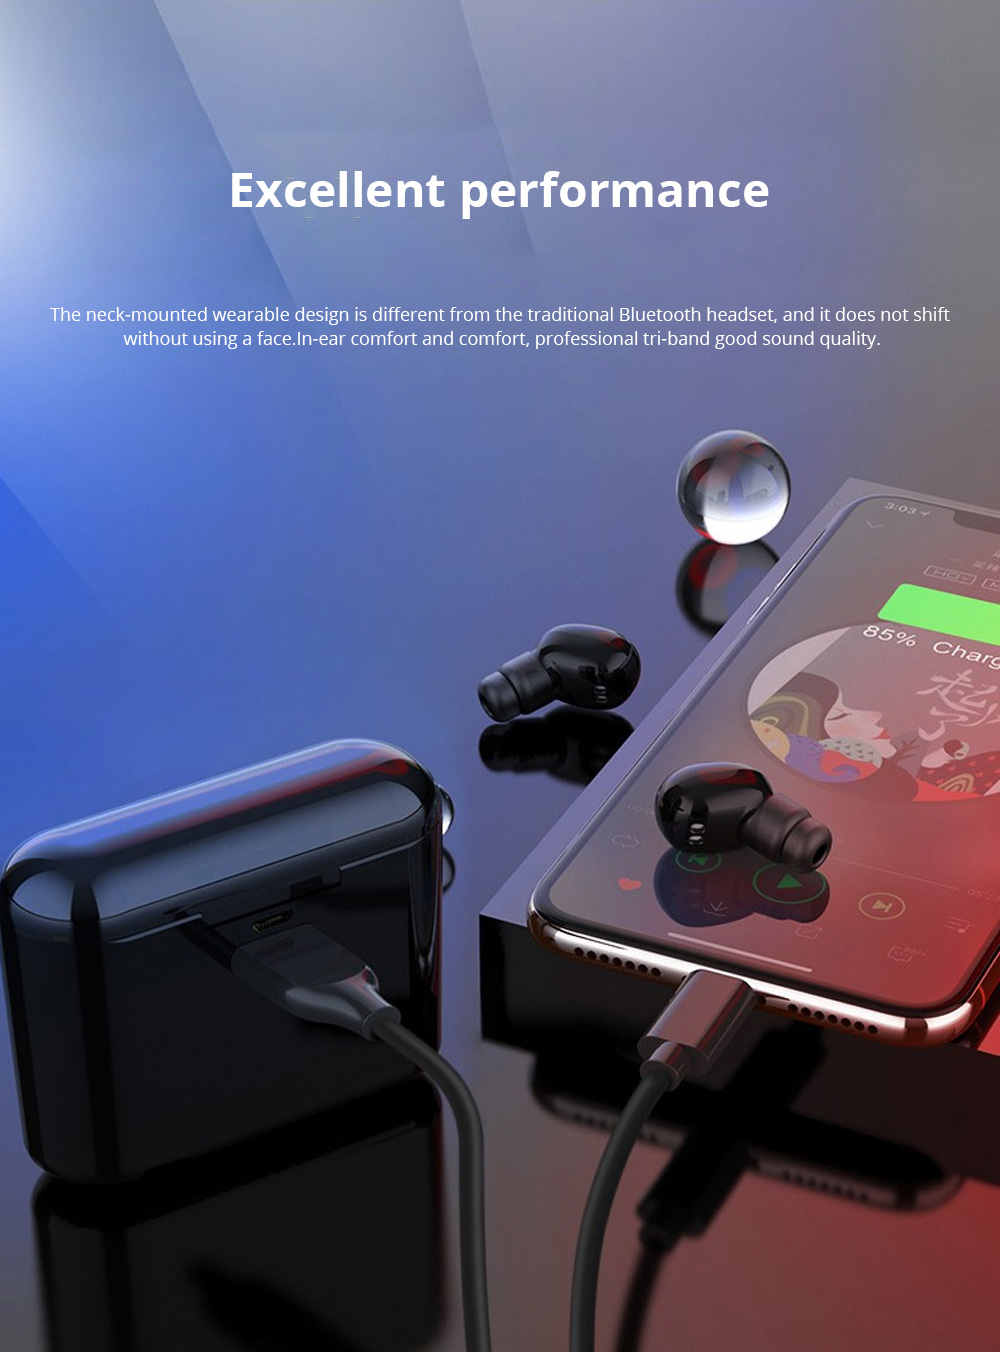 Customization Black Loomoo T8 Earphone Bluetooth Headset Charging Compartment 2200 Capacity Light Compact Sound Quality Supports Hands-free Calling Gift  0